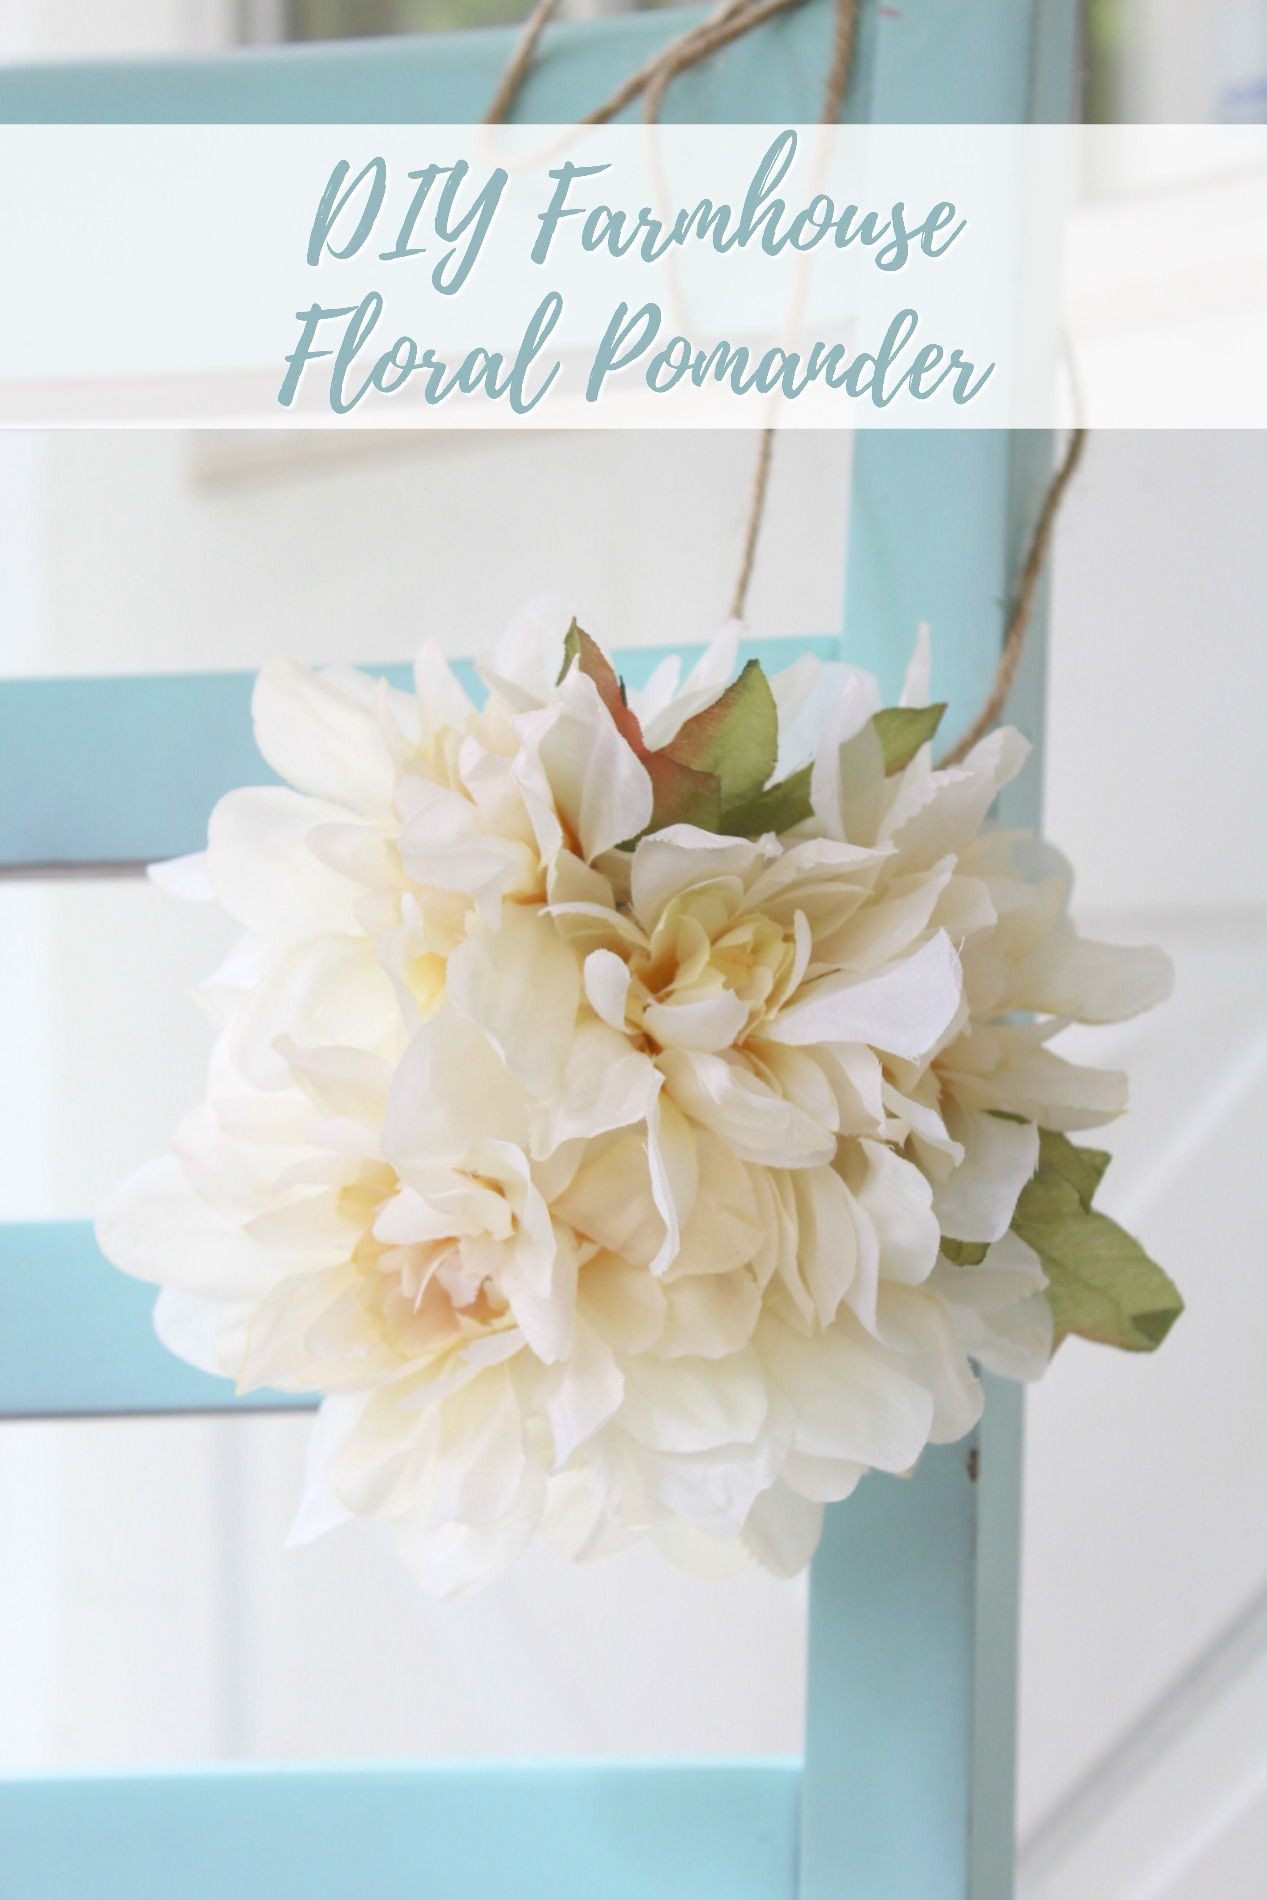 DIY Farmhouse Floral Pomander